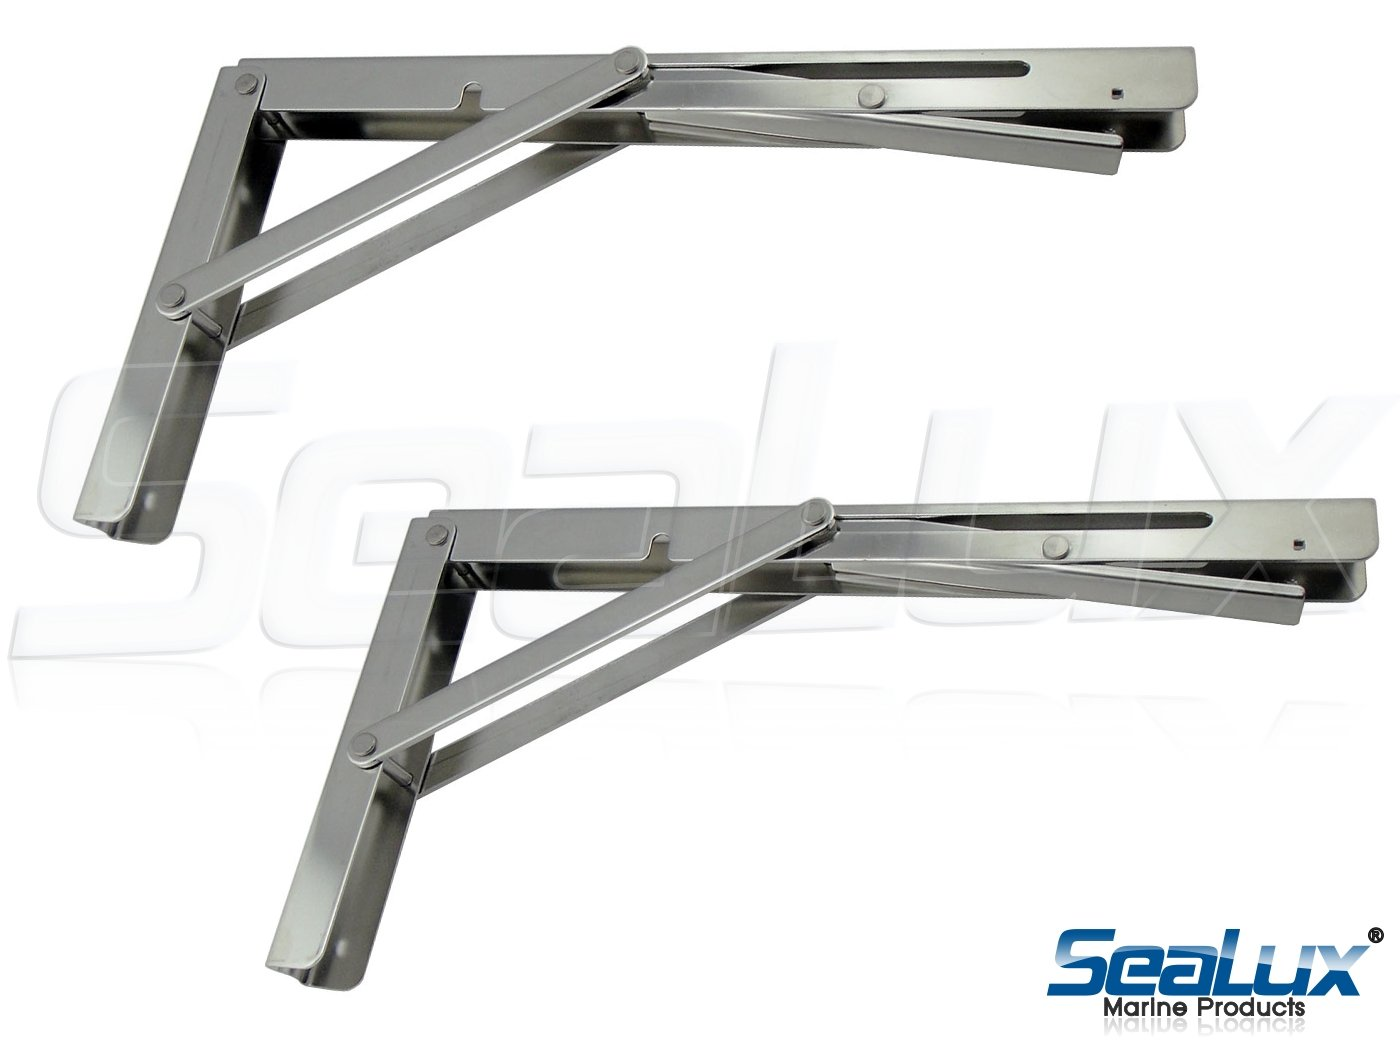 SeaLux Stainless Steel Folding Brackets 90 degree Shelf, Bench, Table Support 12'' Long with easy reach Long release Handle / Max. Bearing 330 lb (Sold as 2 pcs) by SeaLux Marine Products (Image #3)